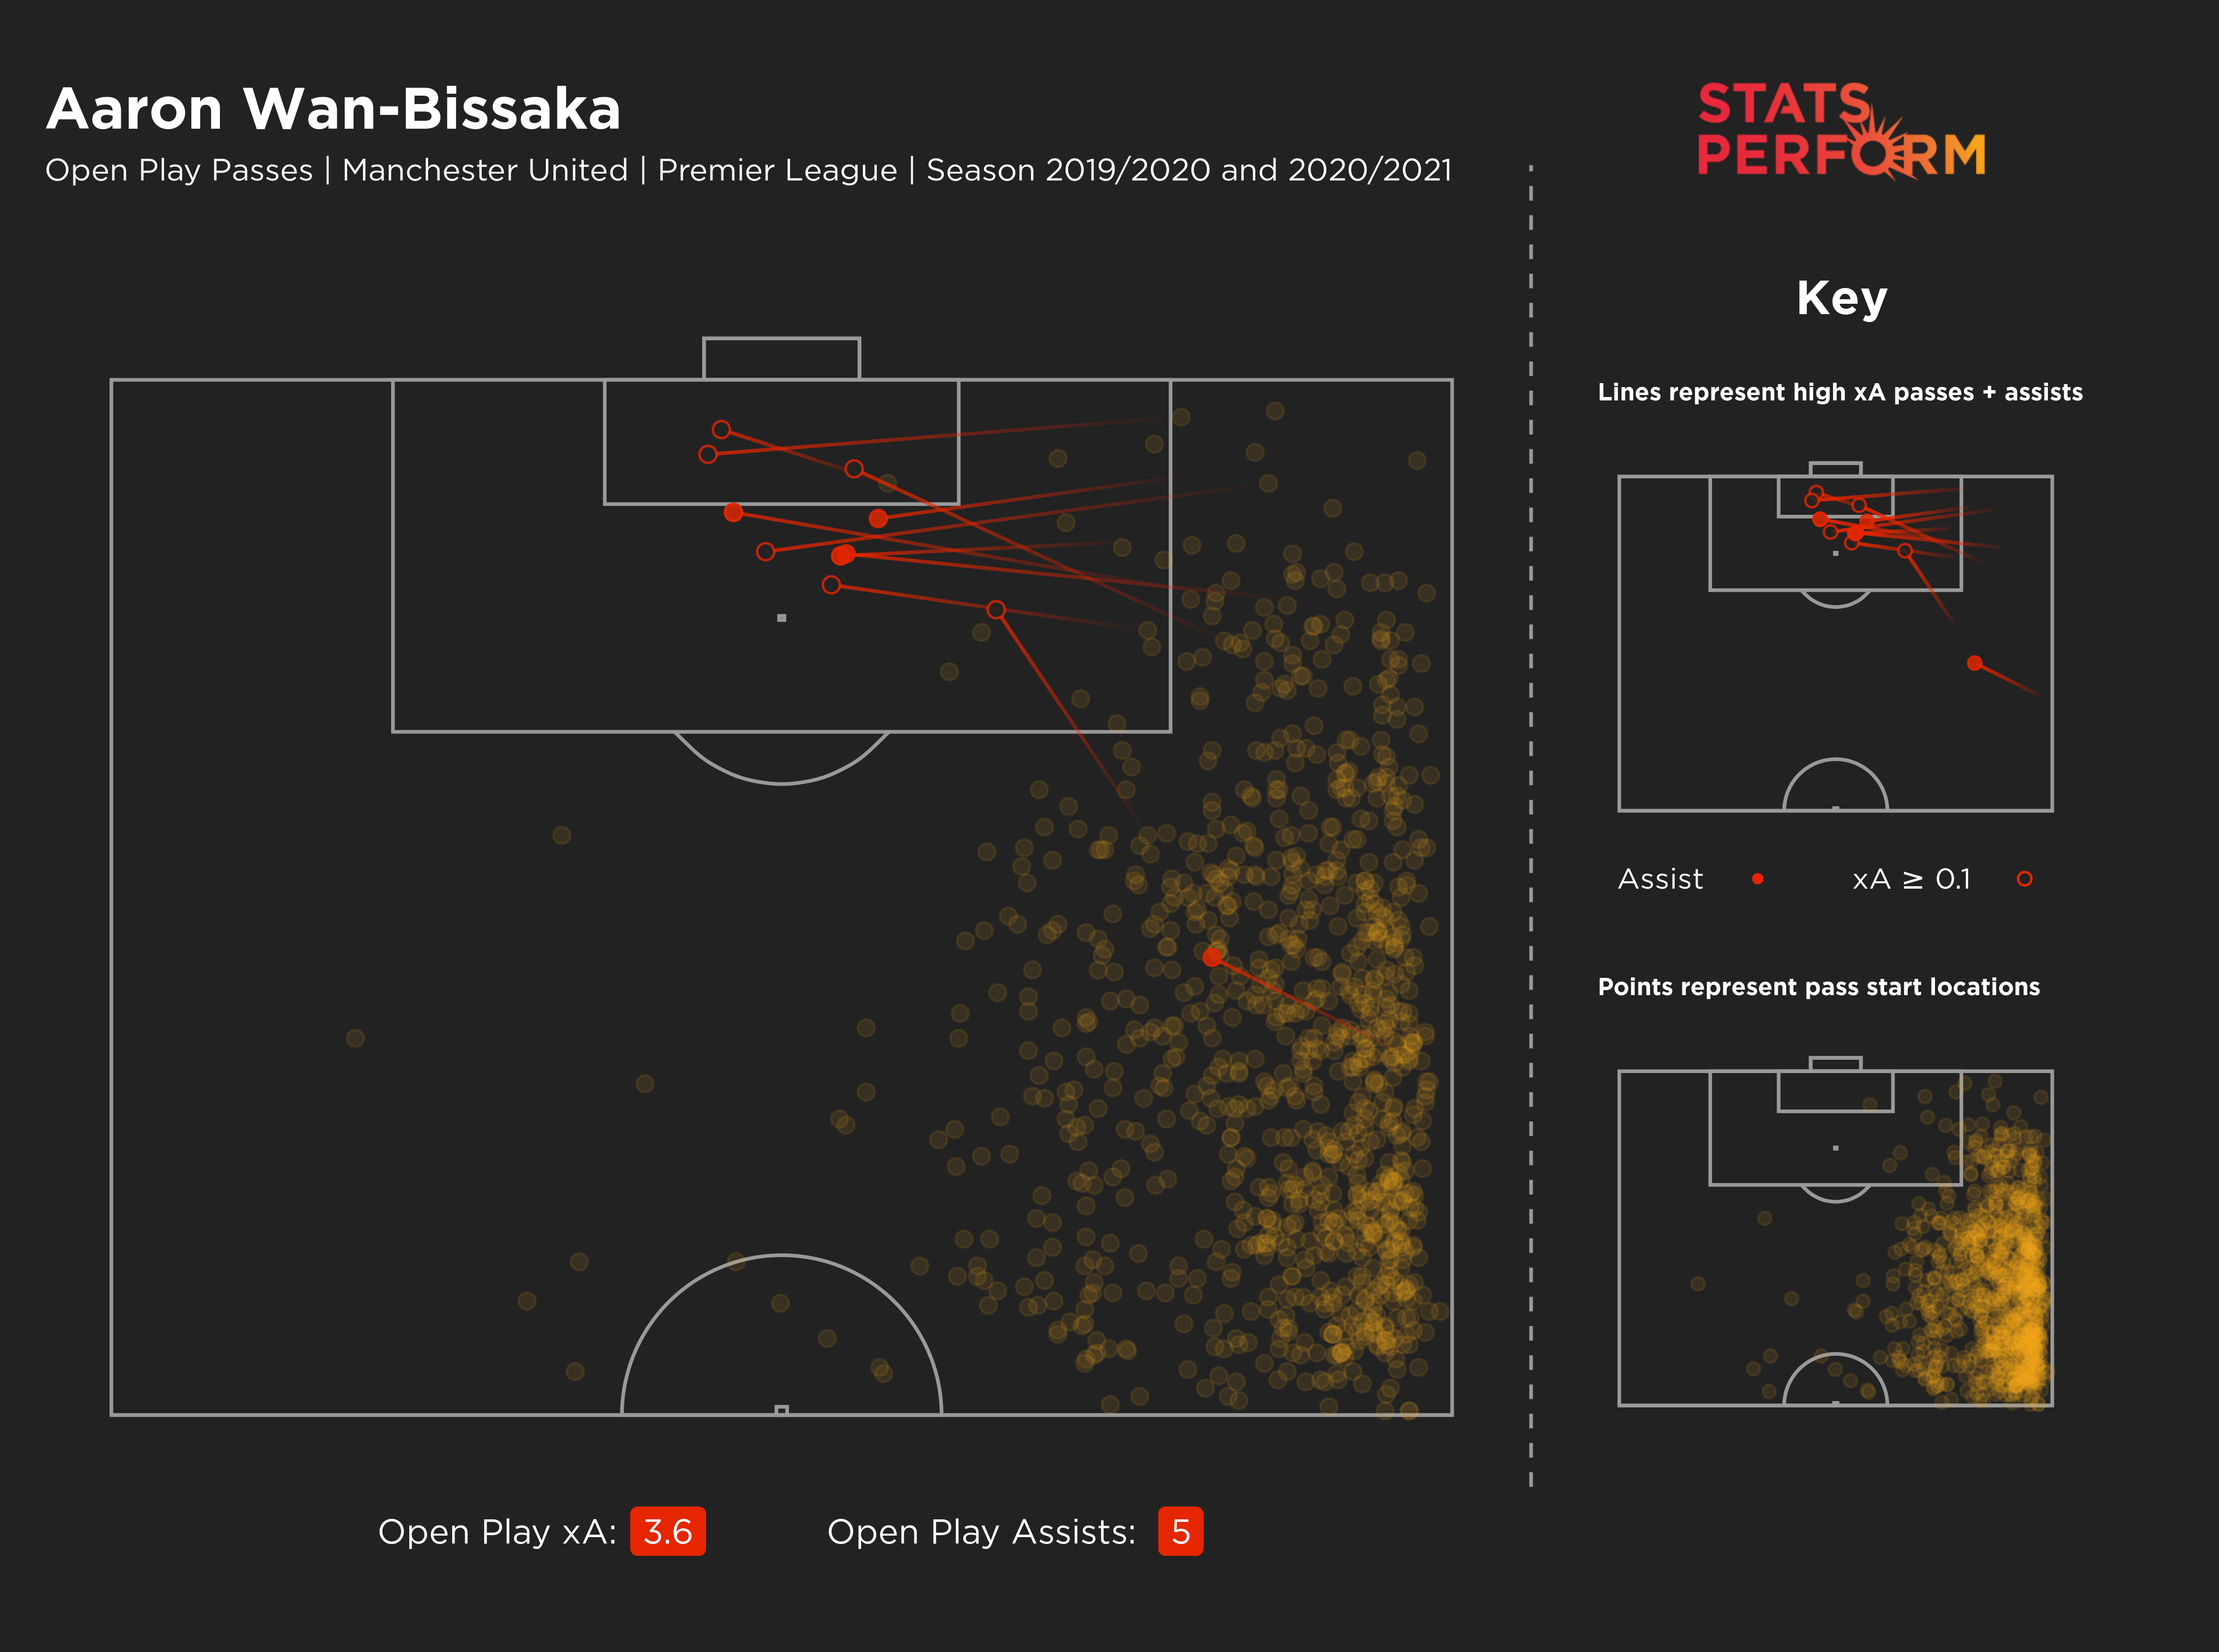 Aaron Wan-Bissaka's expected assists map since the start of 2019-20